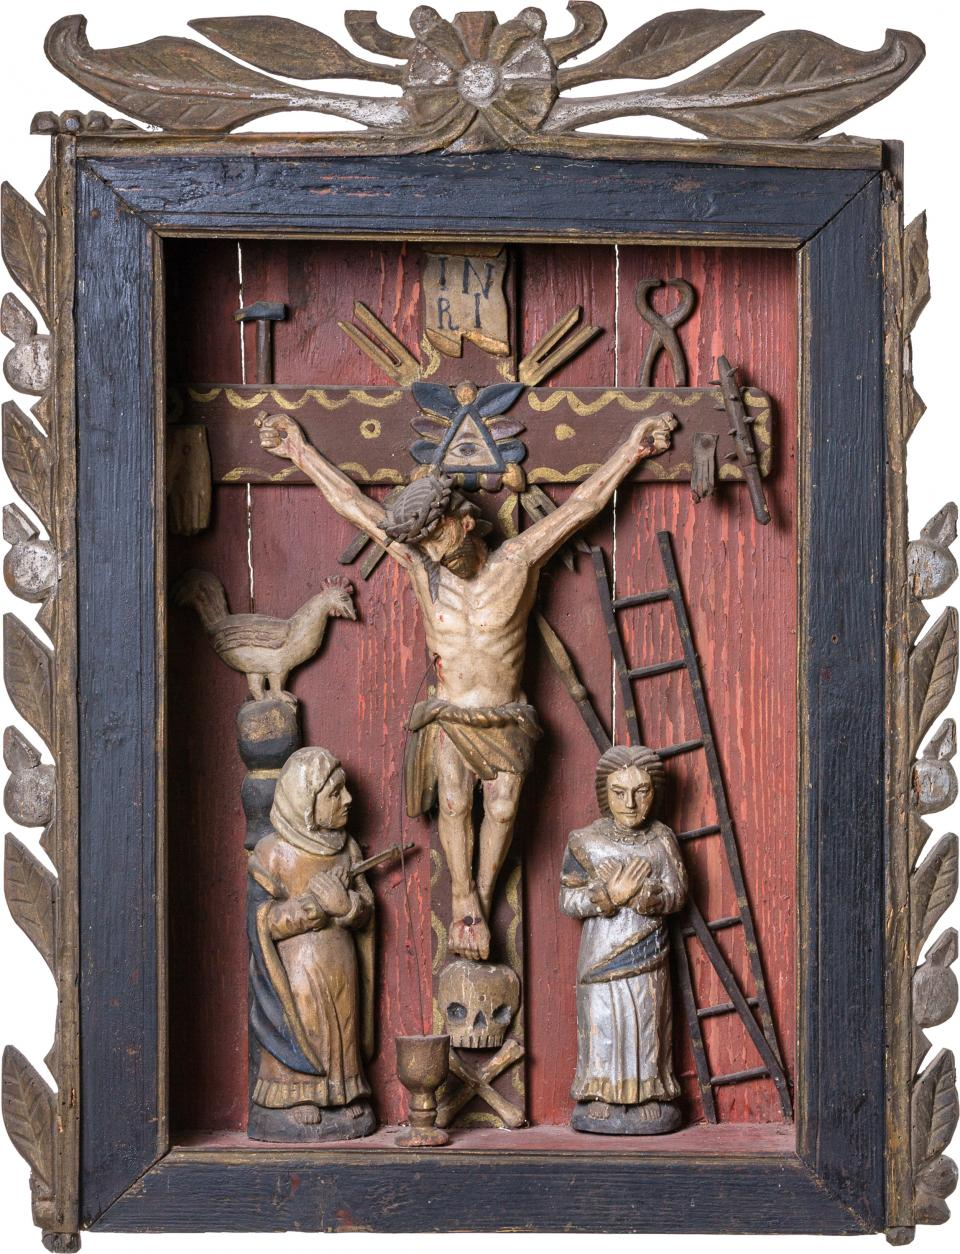 Shrine on the theme of the Crucifixion of Jesus